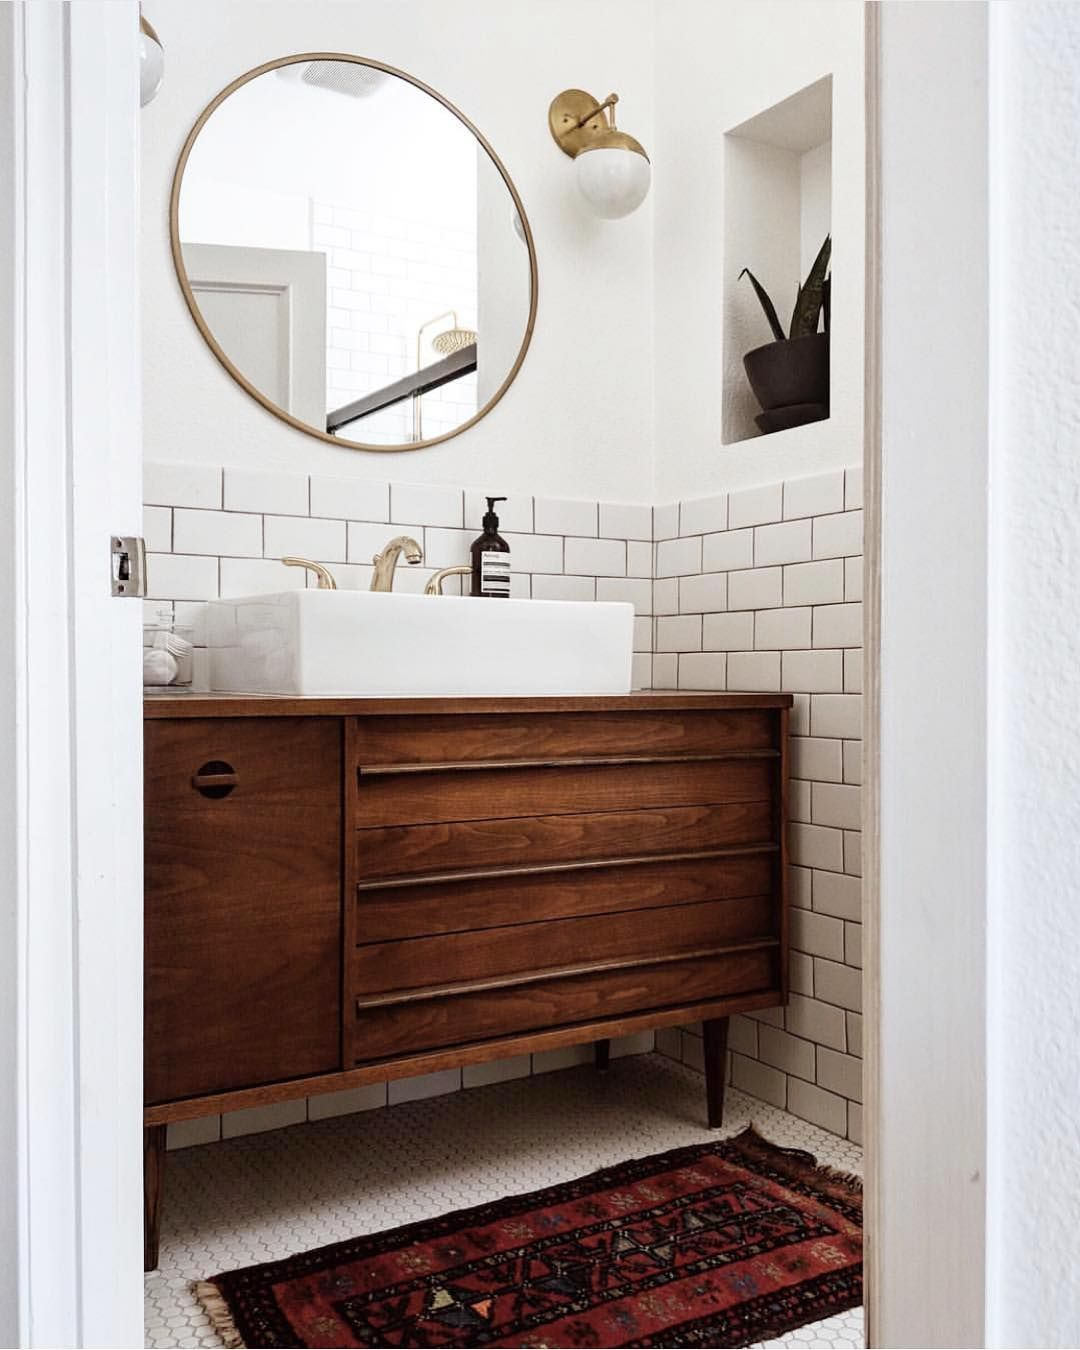 Audrey Crisp On Instagram This Bathroom Is Awesome I Always Love A Good Mid Century Modern Vanity By Tiffwang Mid Century Modern Bathroom Mid Century Modern Vanity Modern Bathroom Design